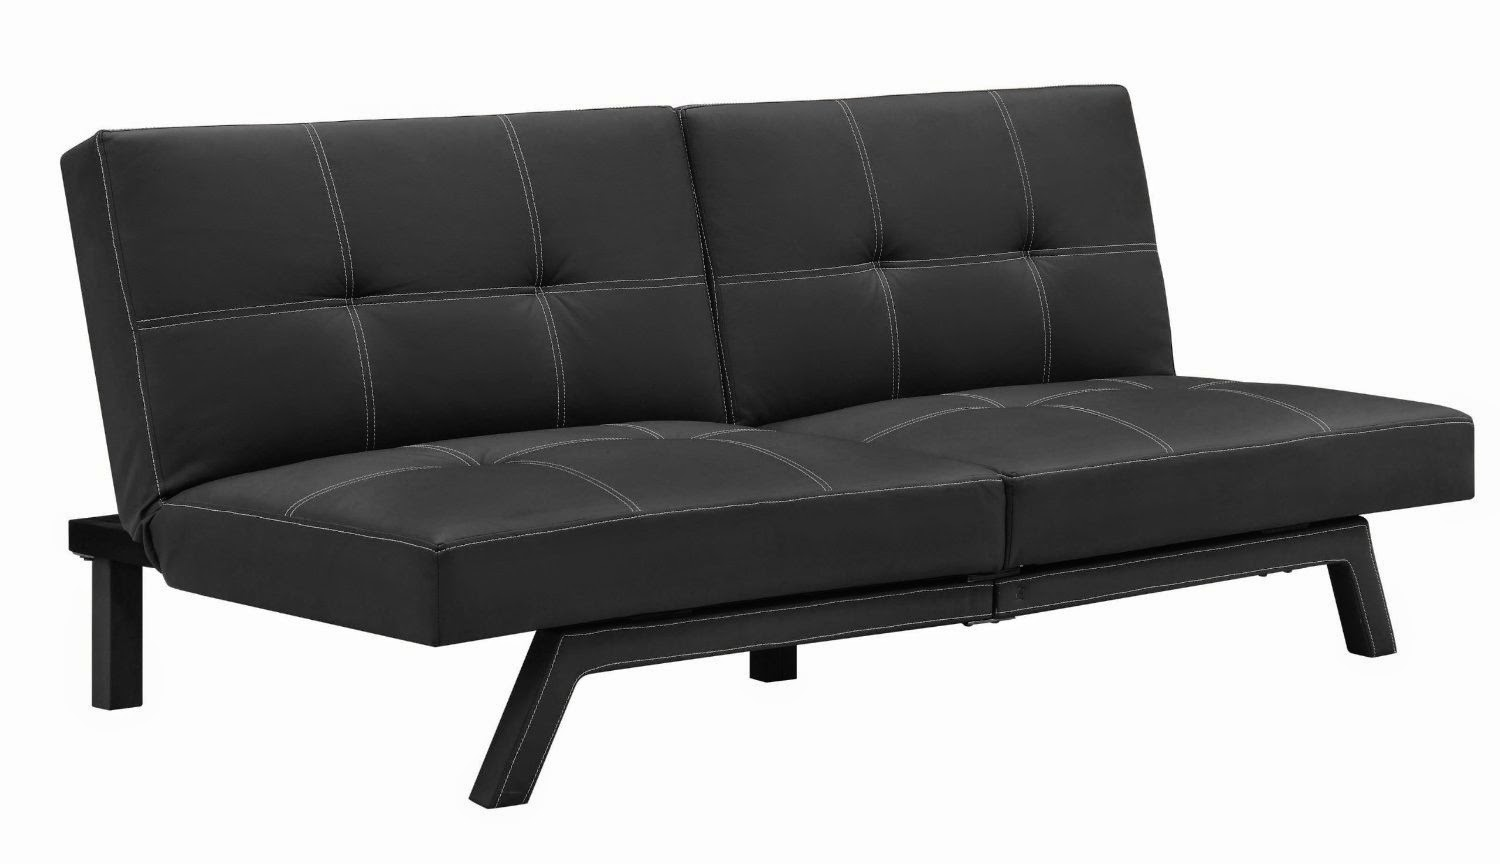 futon black leather couch